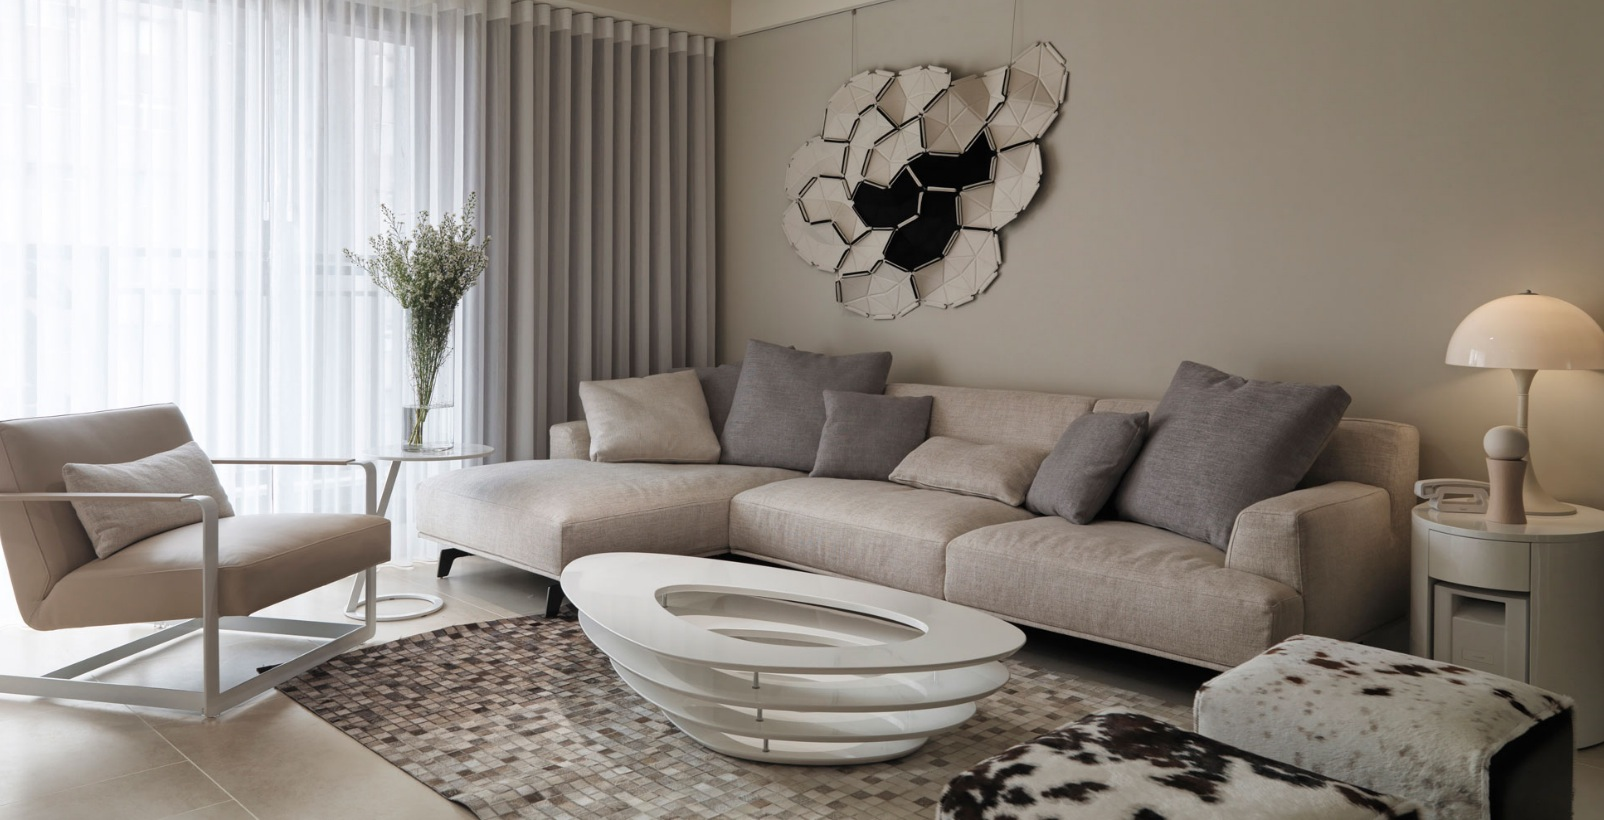 Neutral contemporary apartment by w c h design studio for Best neutral colors for living room